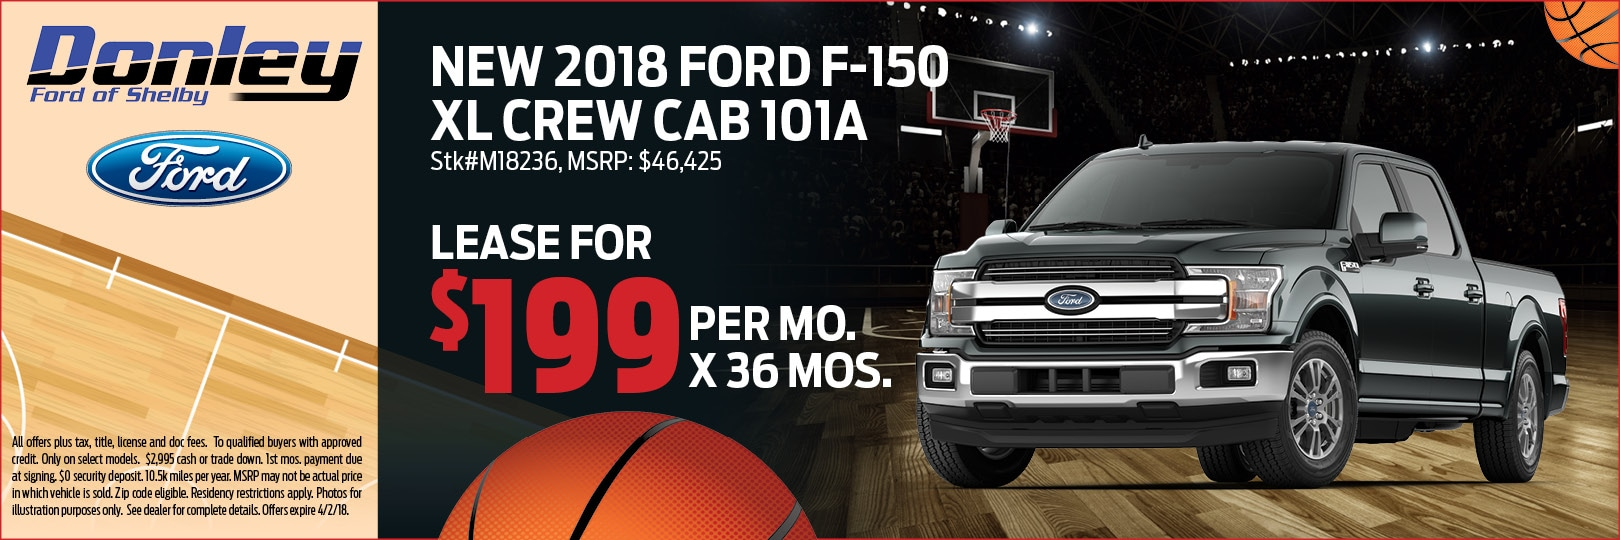 2018 Ford F-150 XL Crew Cab 101A in Shelby, OH